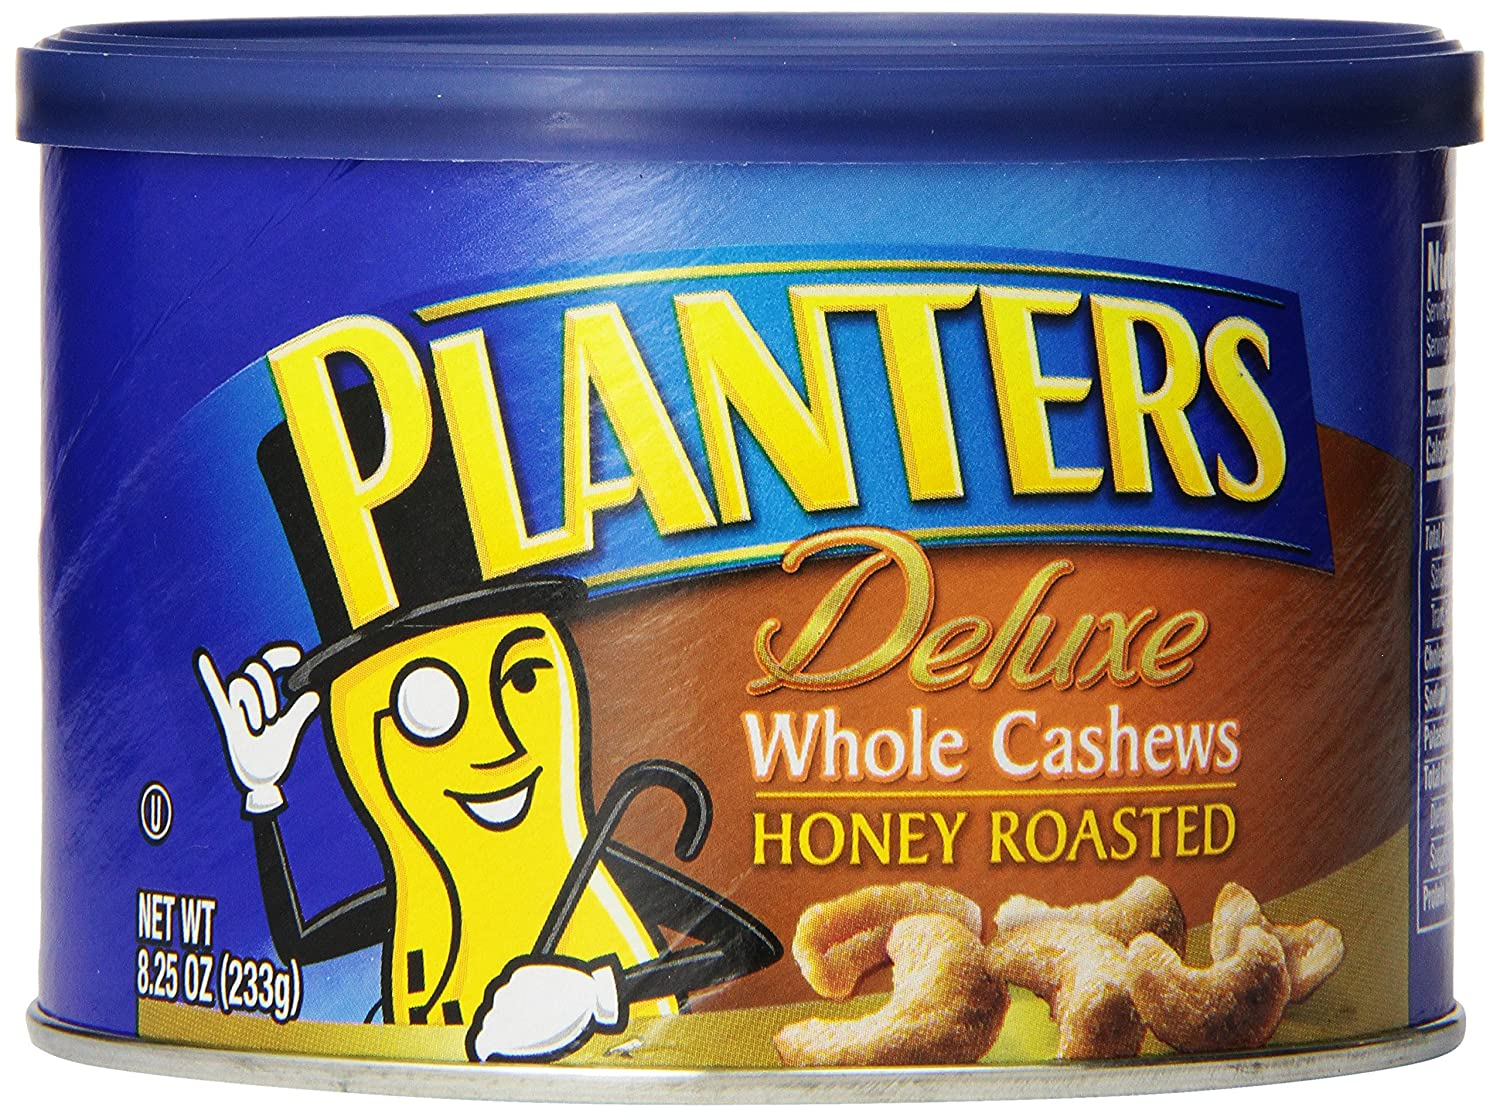 Planters Deluxe Whole Cashews Honey Roasted, 8.25 oz. (Count of 3)